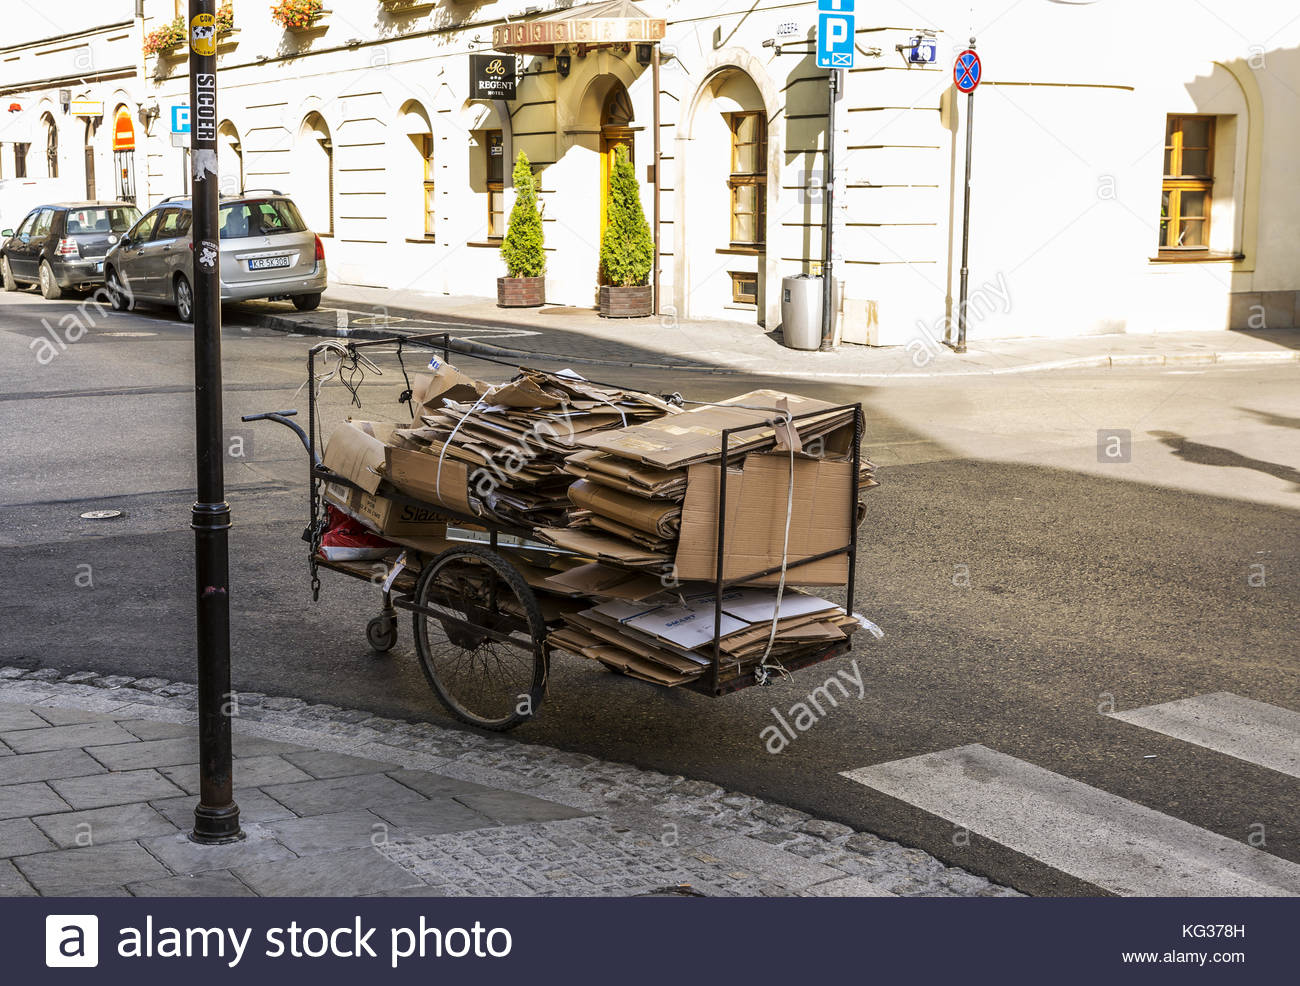 Old fashioned cart stacked with recyclable cardboard stood in a street in Krakow, Poland - Stock Image